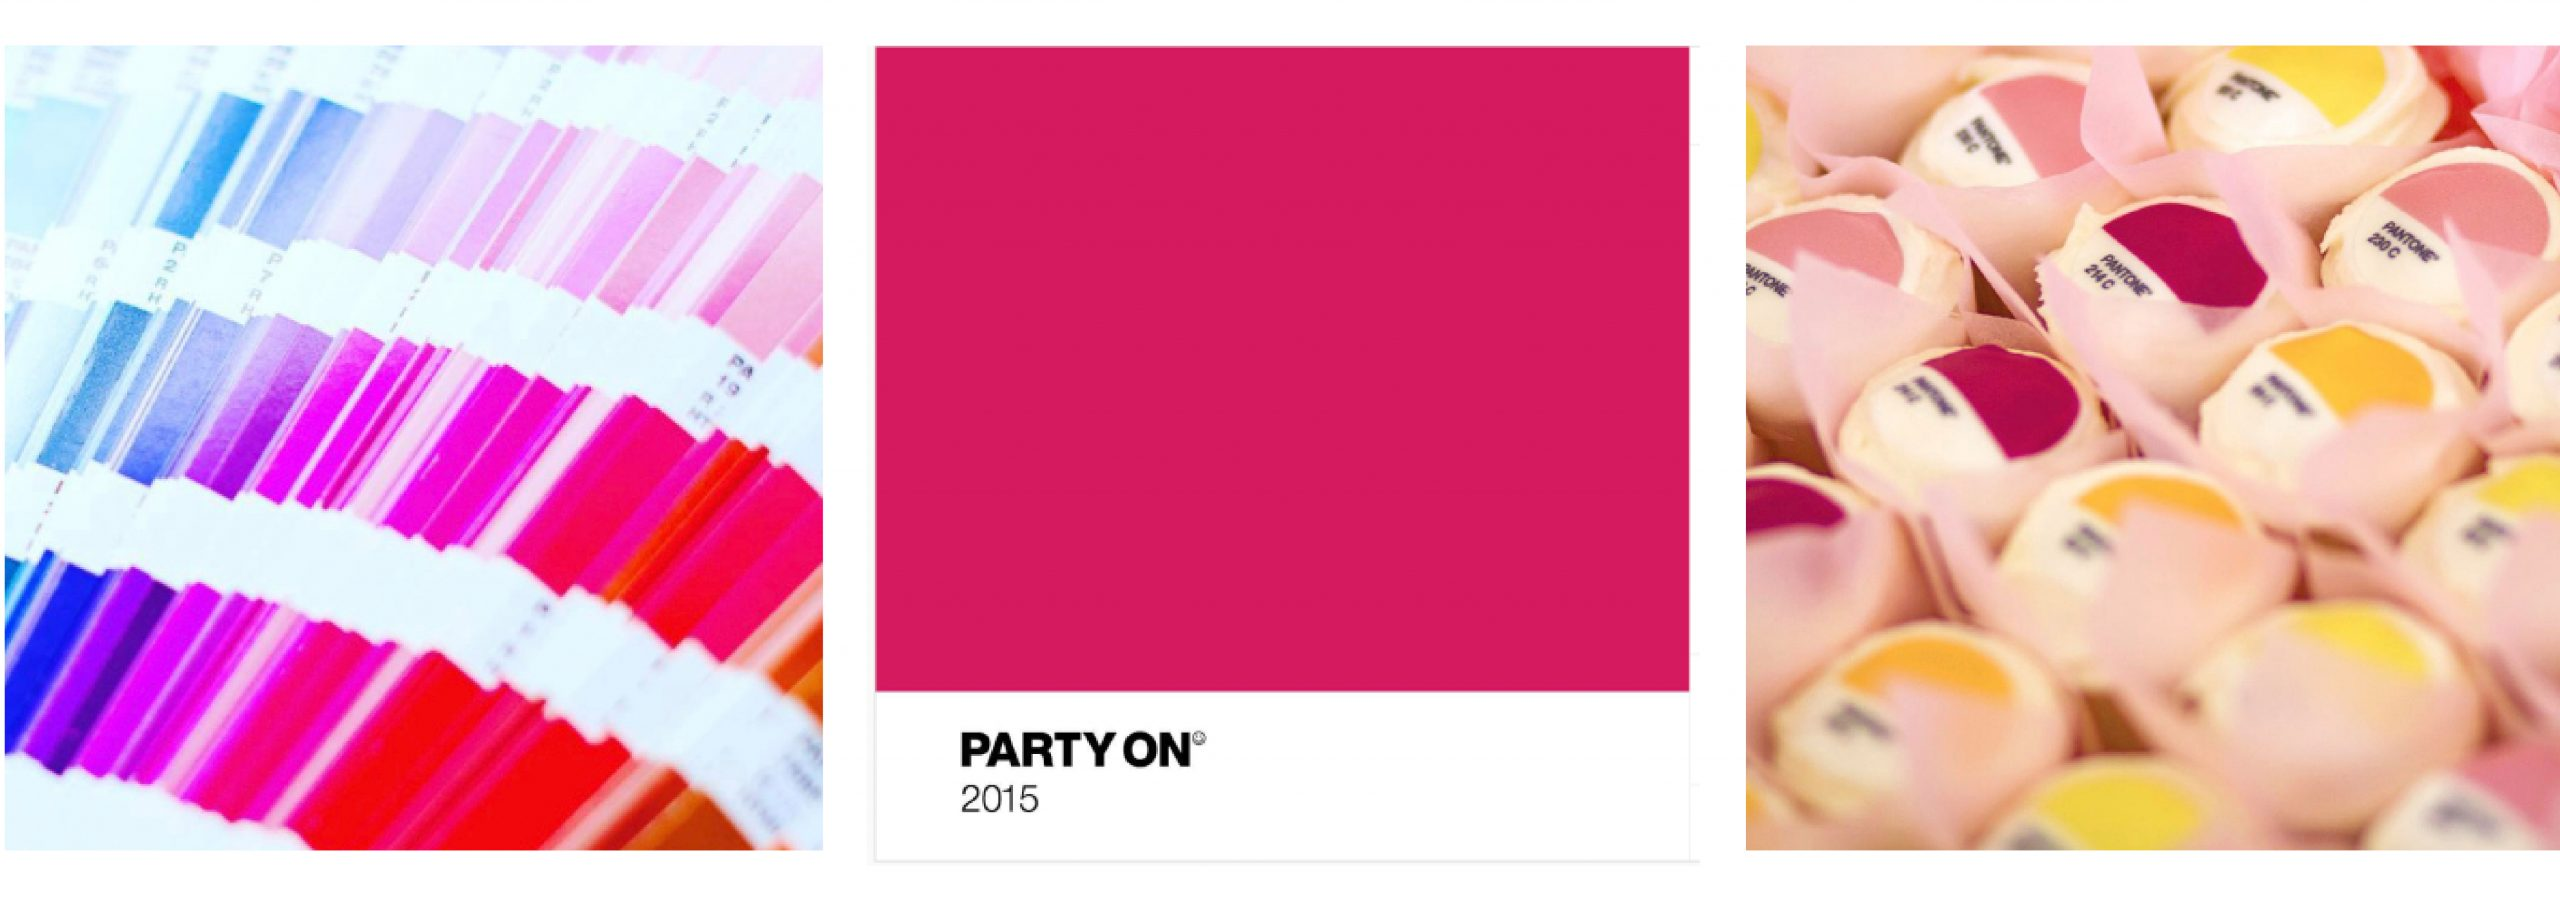 The Pantone Matching System has always coloured our world.